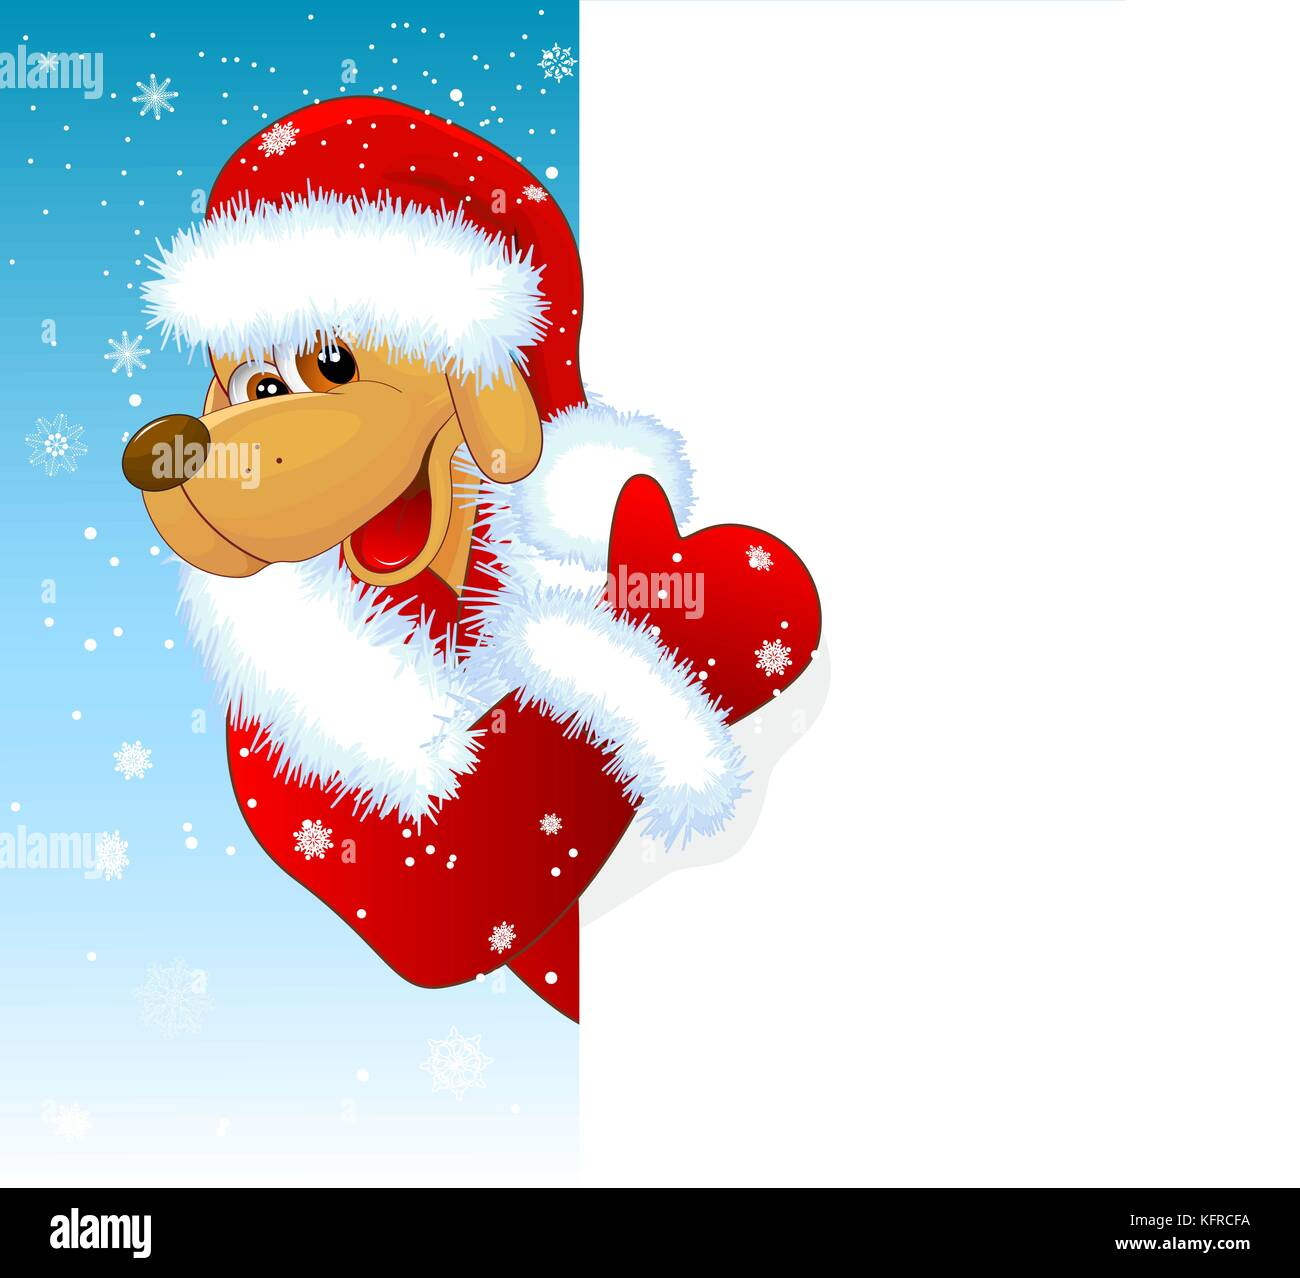 Christmas Greets Stock Vector Images - Alamy